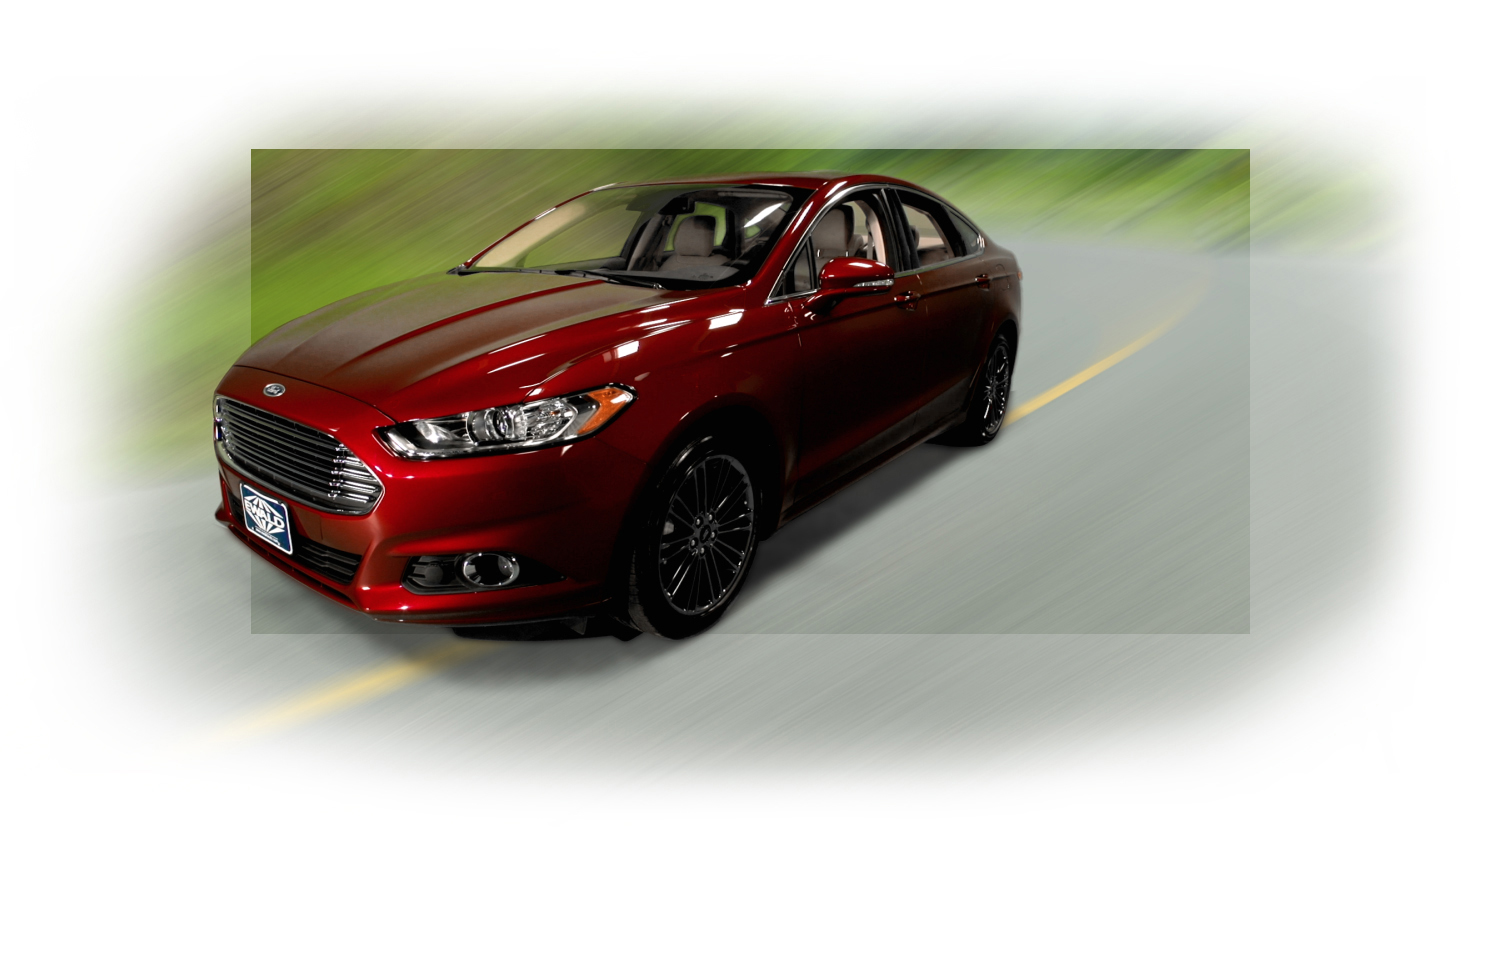 2015 Ford Fusion front view